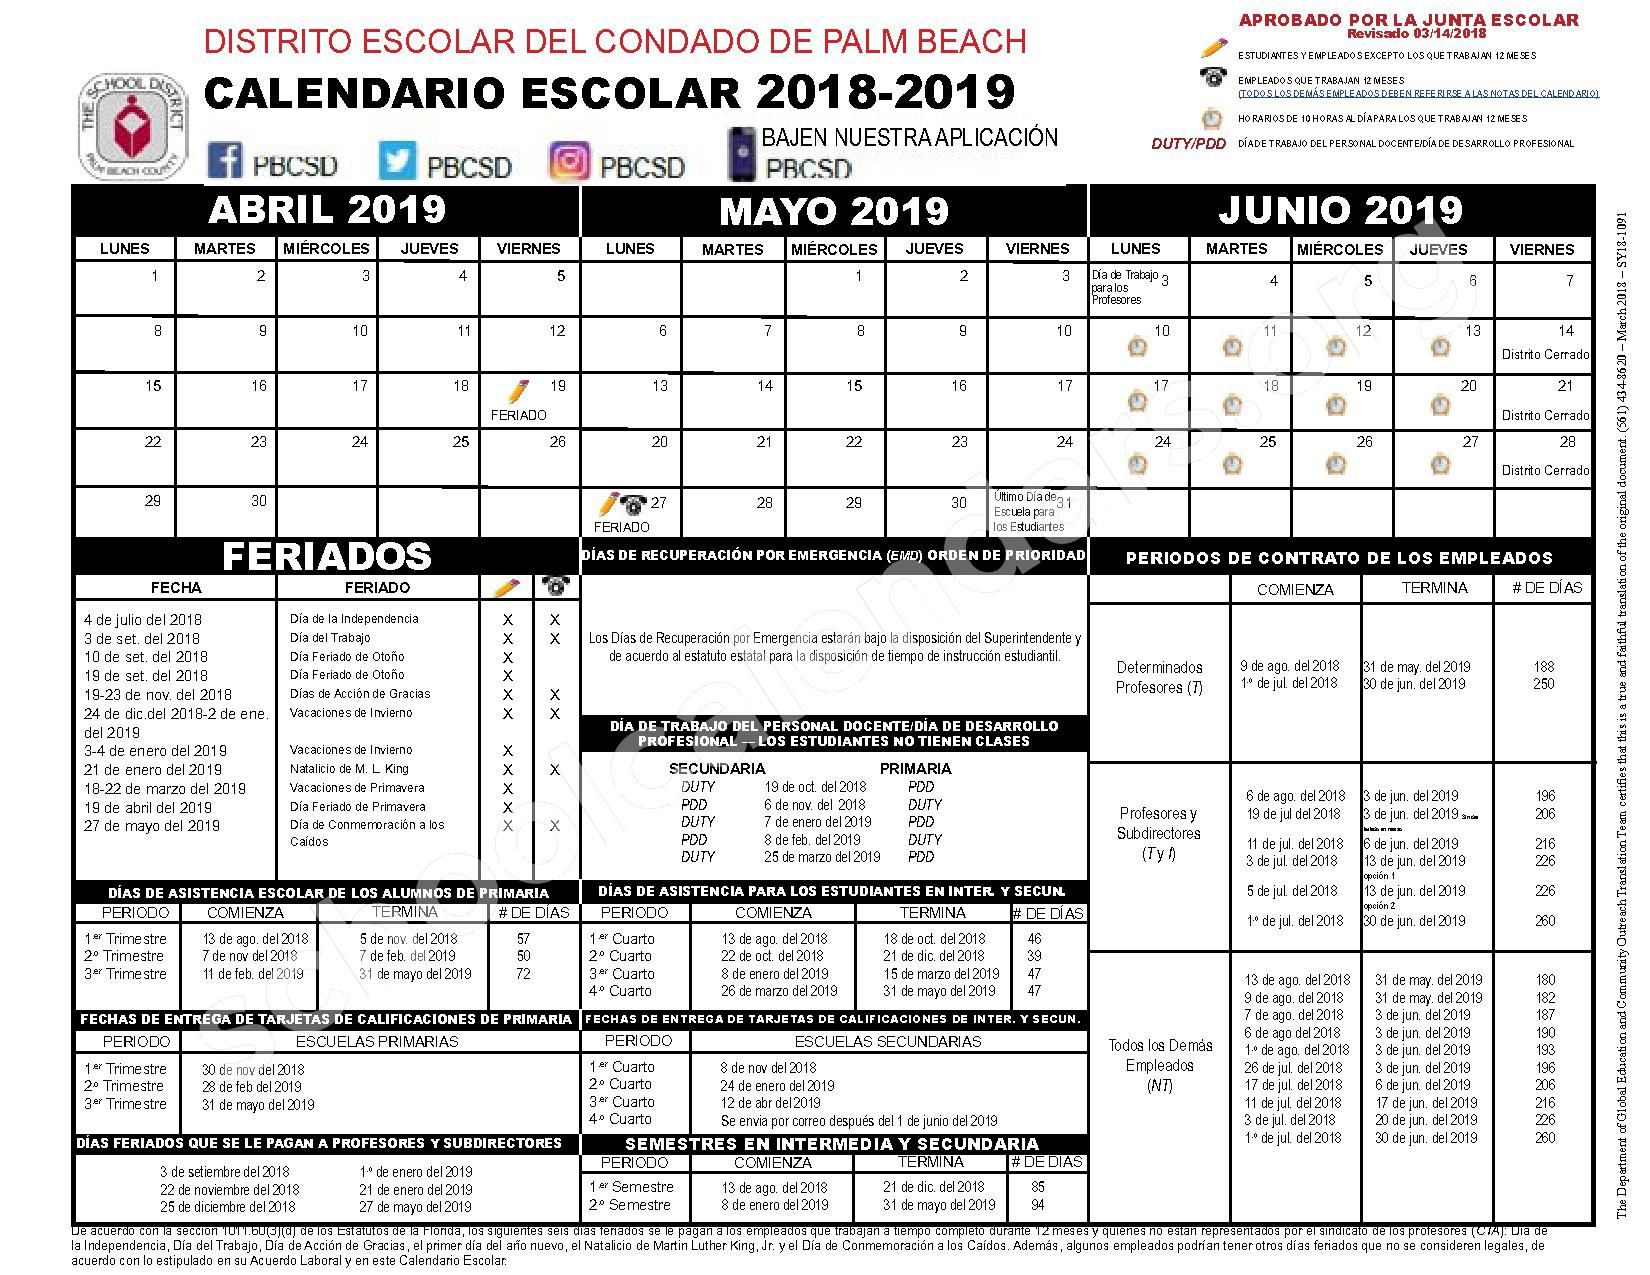 2018 - 2019 Calendario Escolar – Boynton Beach Community Adult – page 2